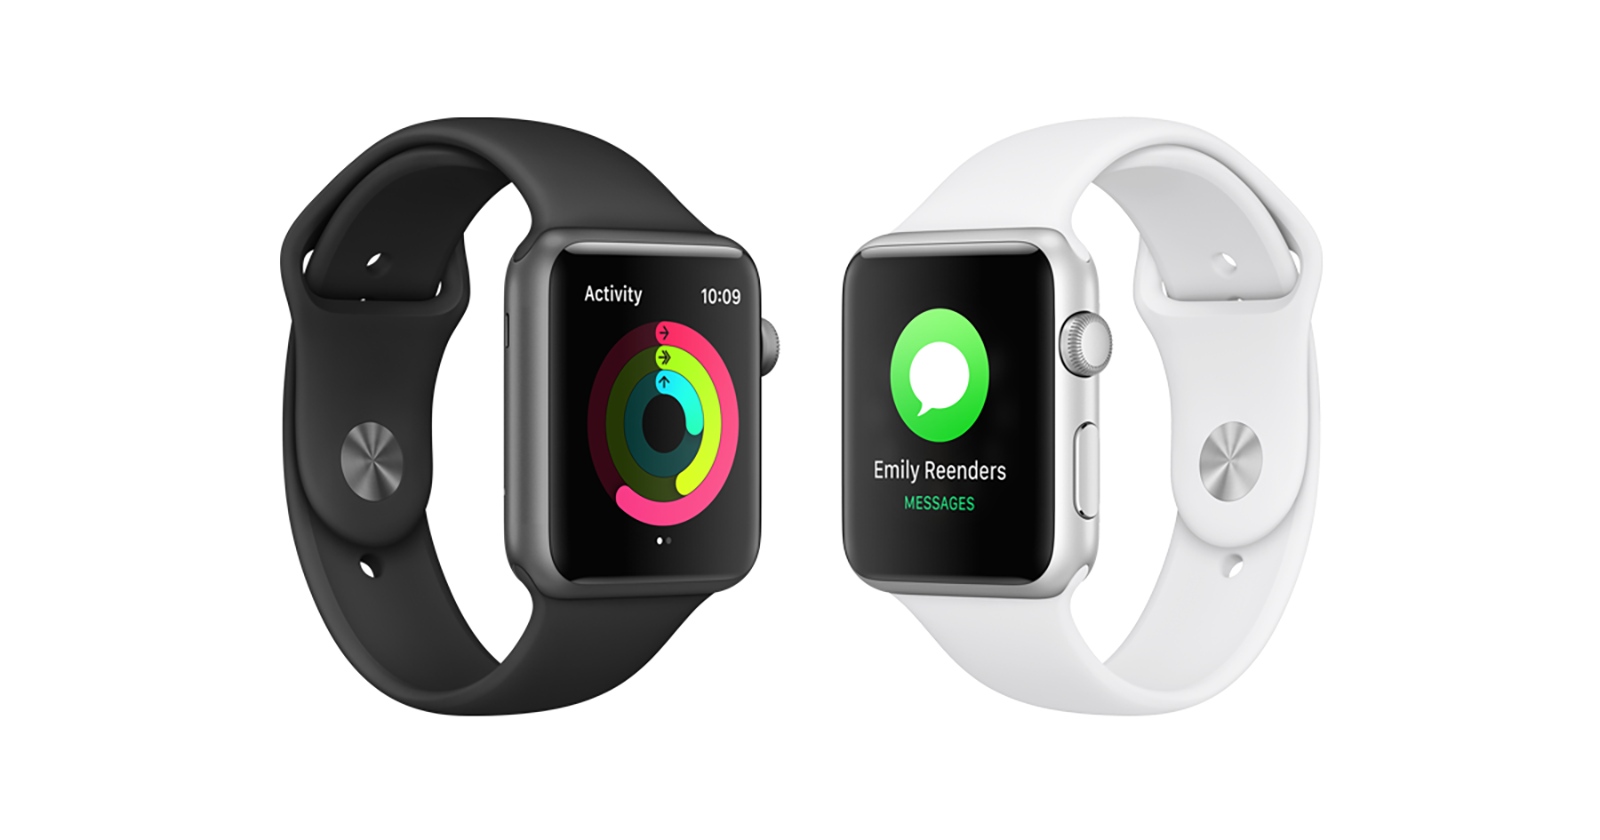 target offers discounted apple watch series 1 models the mac observer